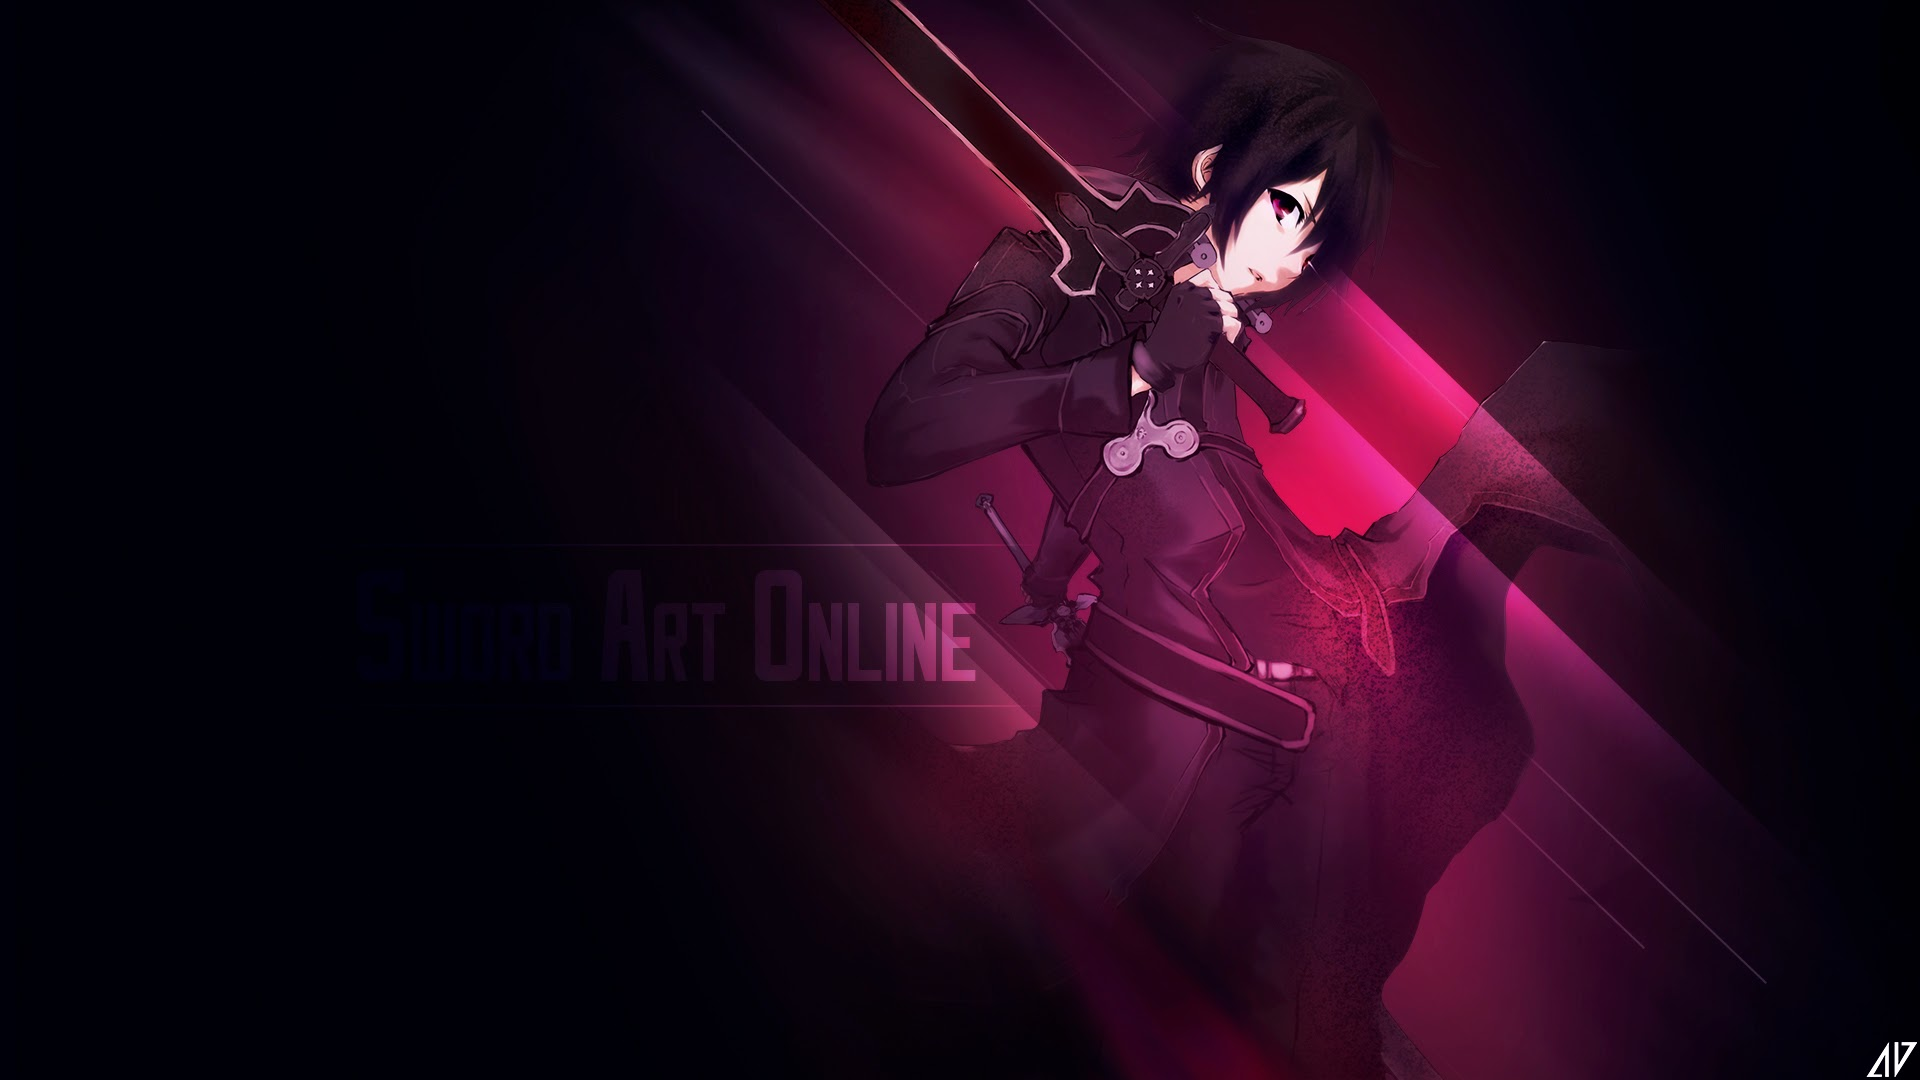 Kirito Anime Picture 0l HD Wallpaper